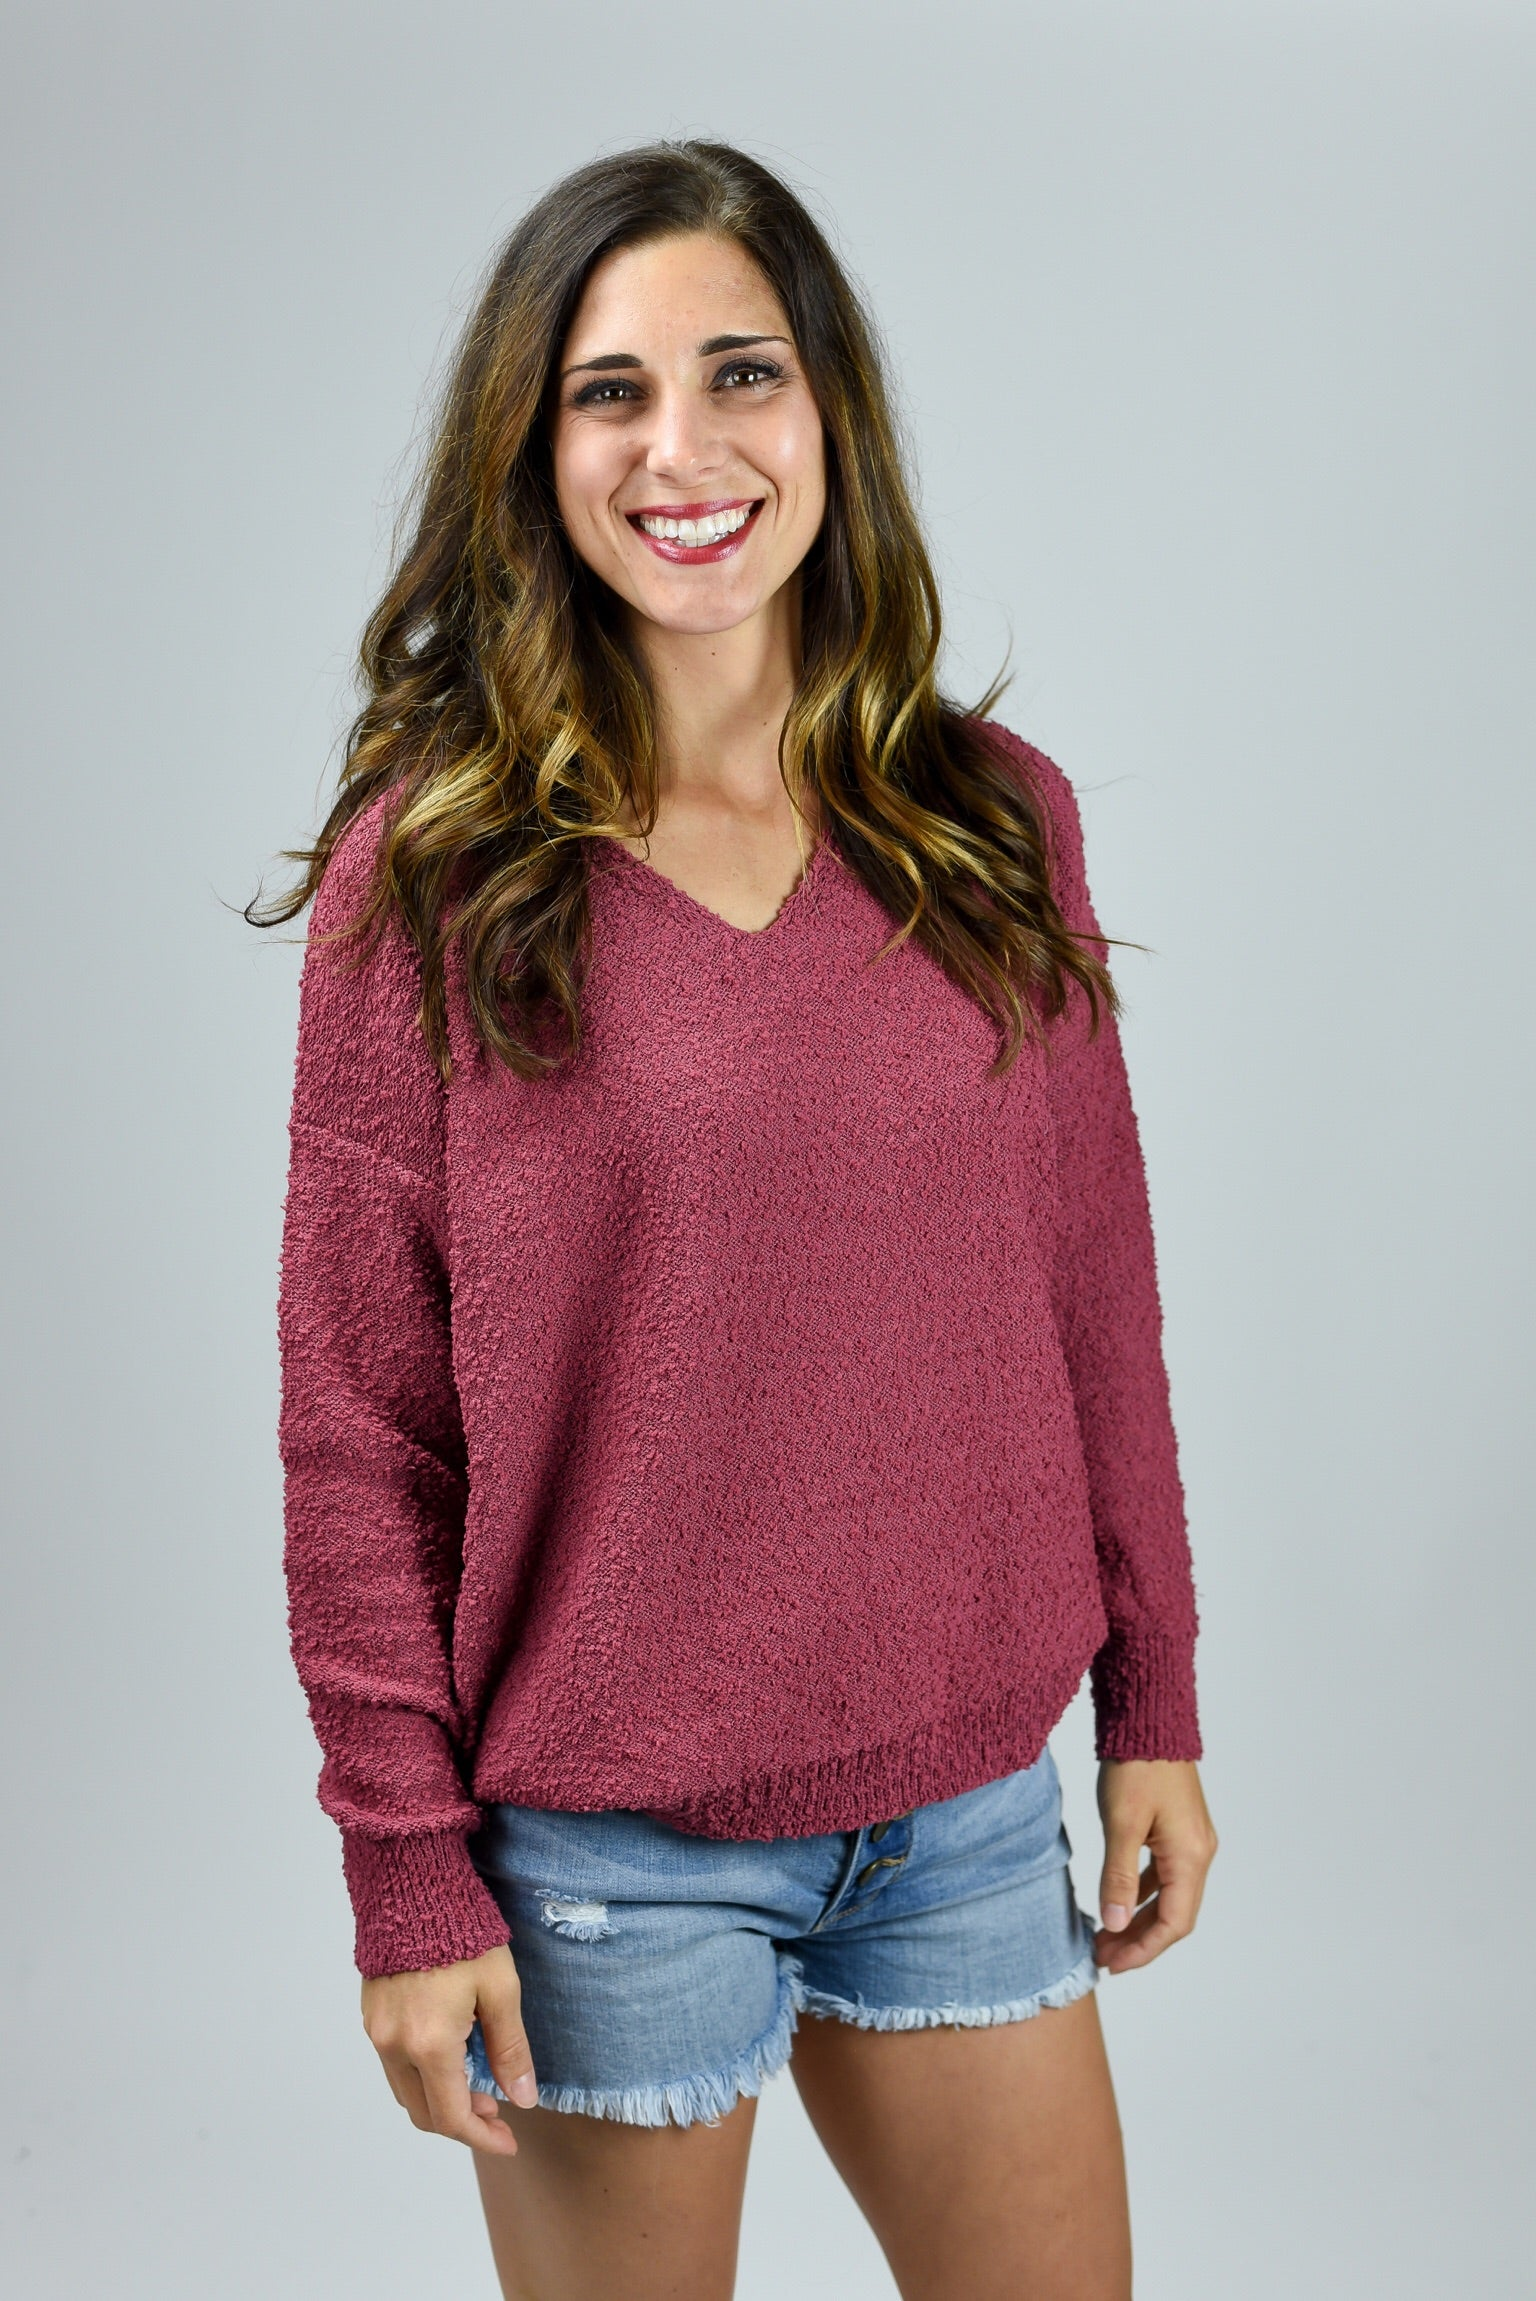 Mutual Feeling Vneck Berry Sweater